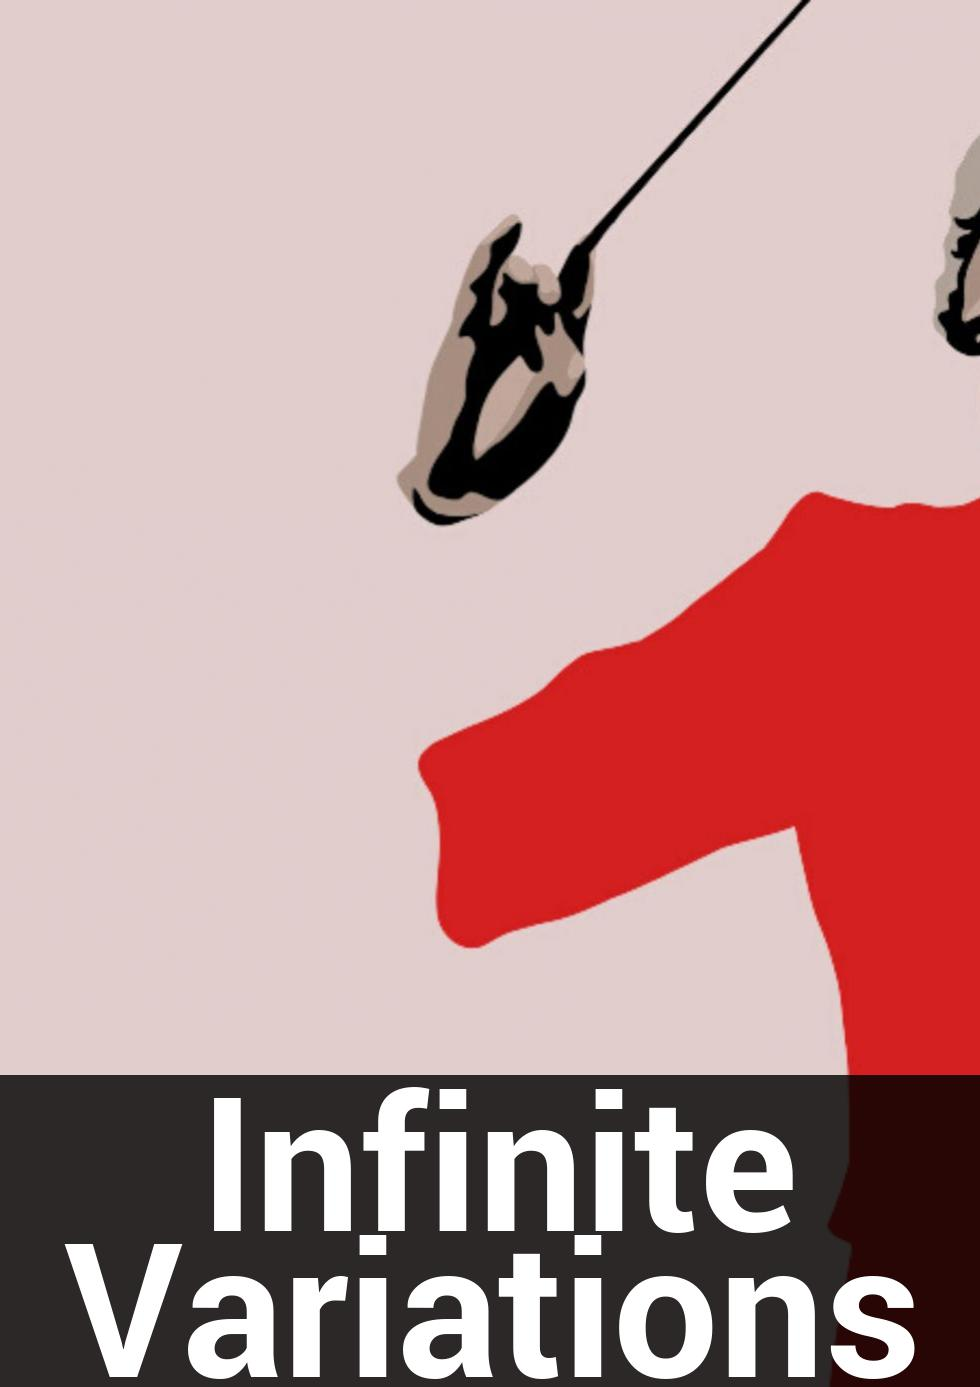 Infinite Variations at Perth Concert Hall